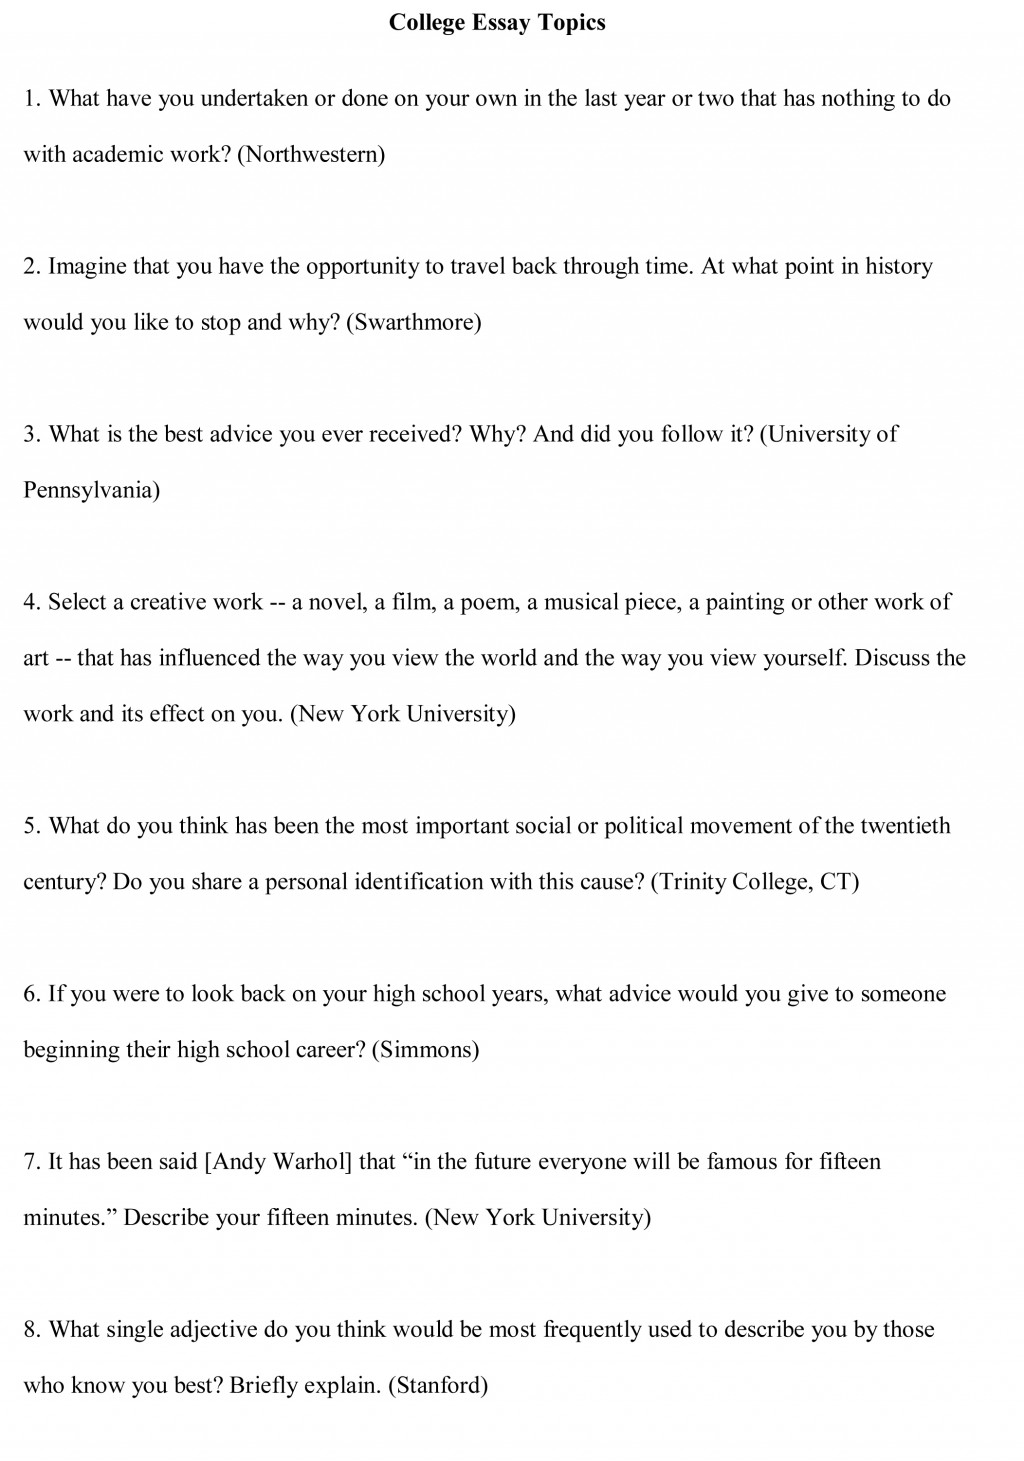 015 Psychology Argumentative Essay Topics Example College Free Staggering Social Related To Large